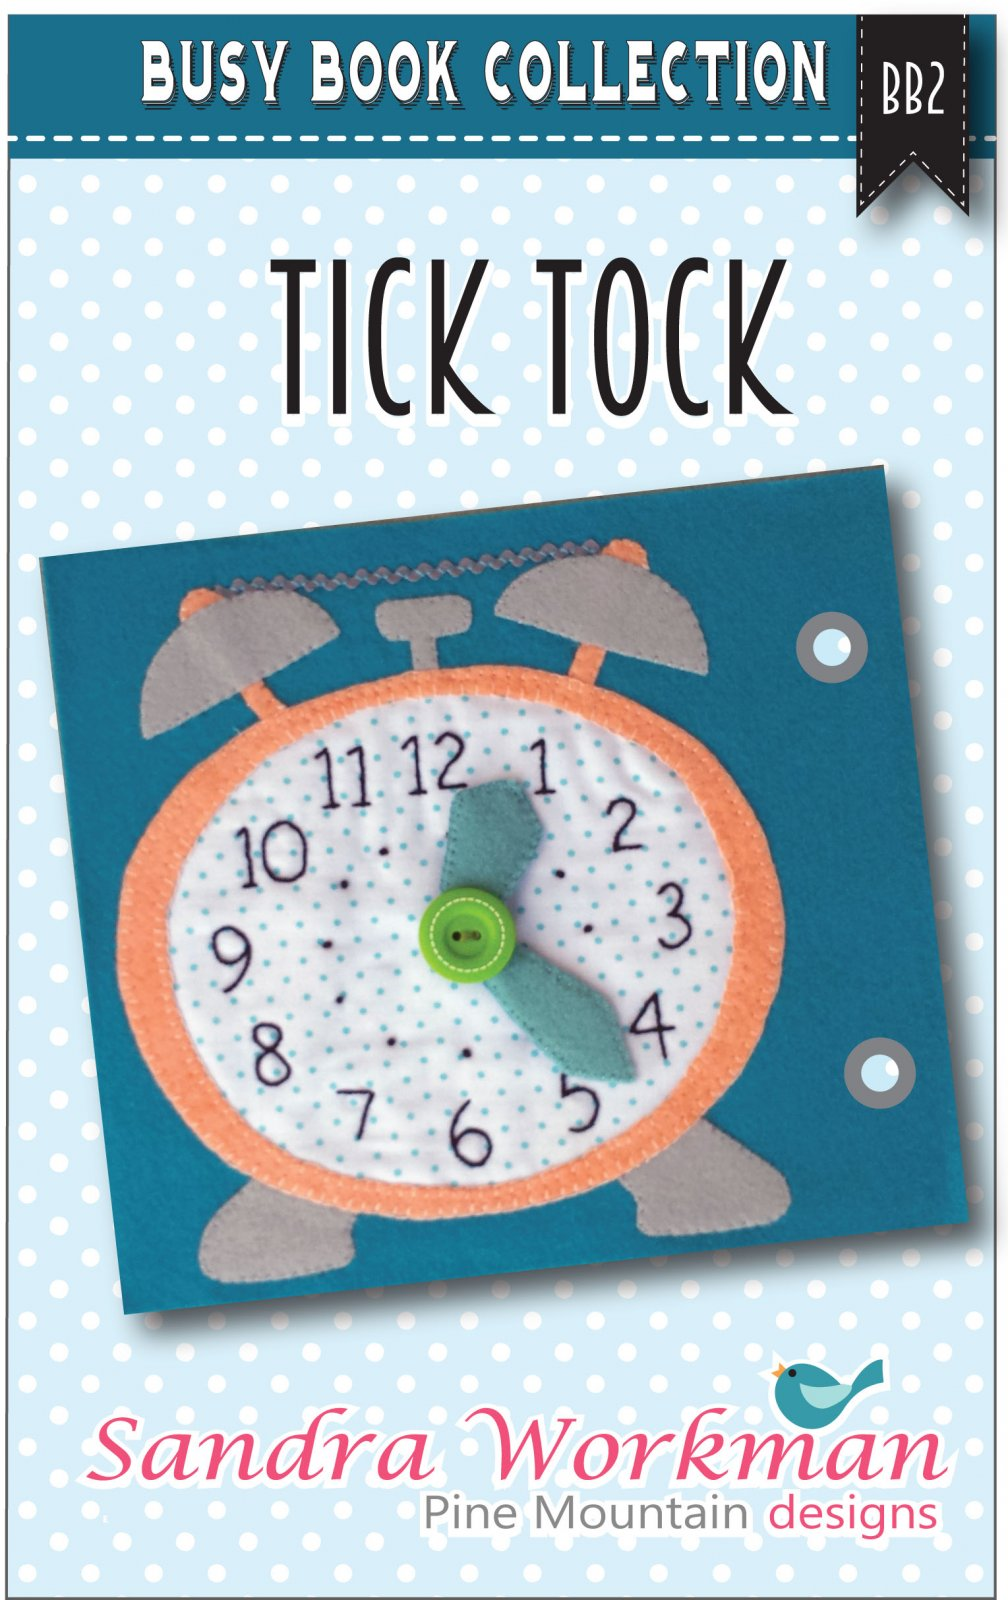 Busy Book Tick Tock